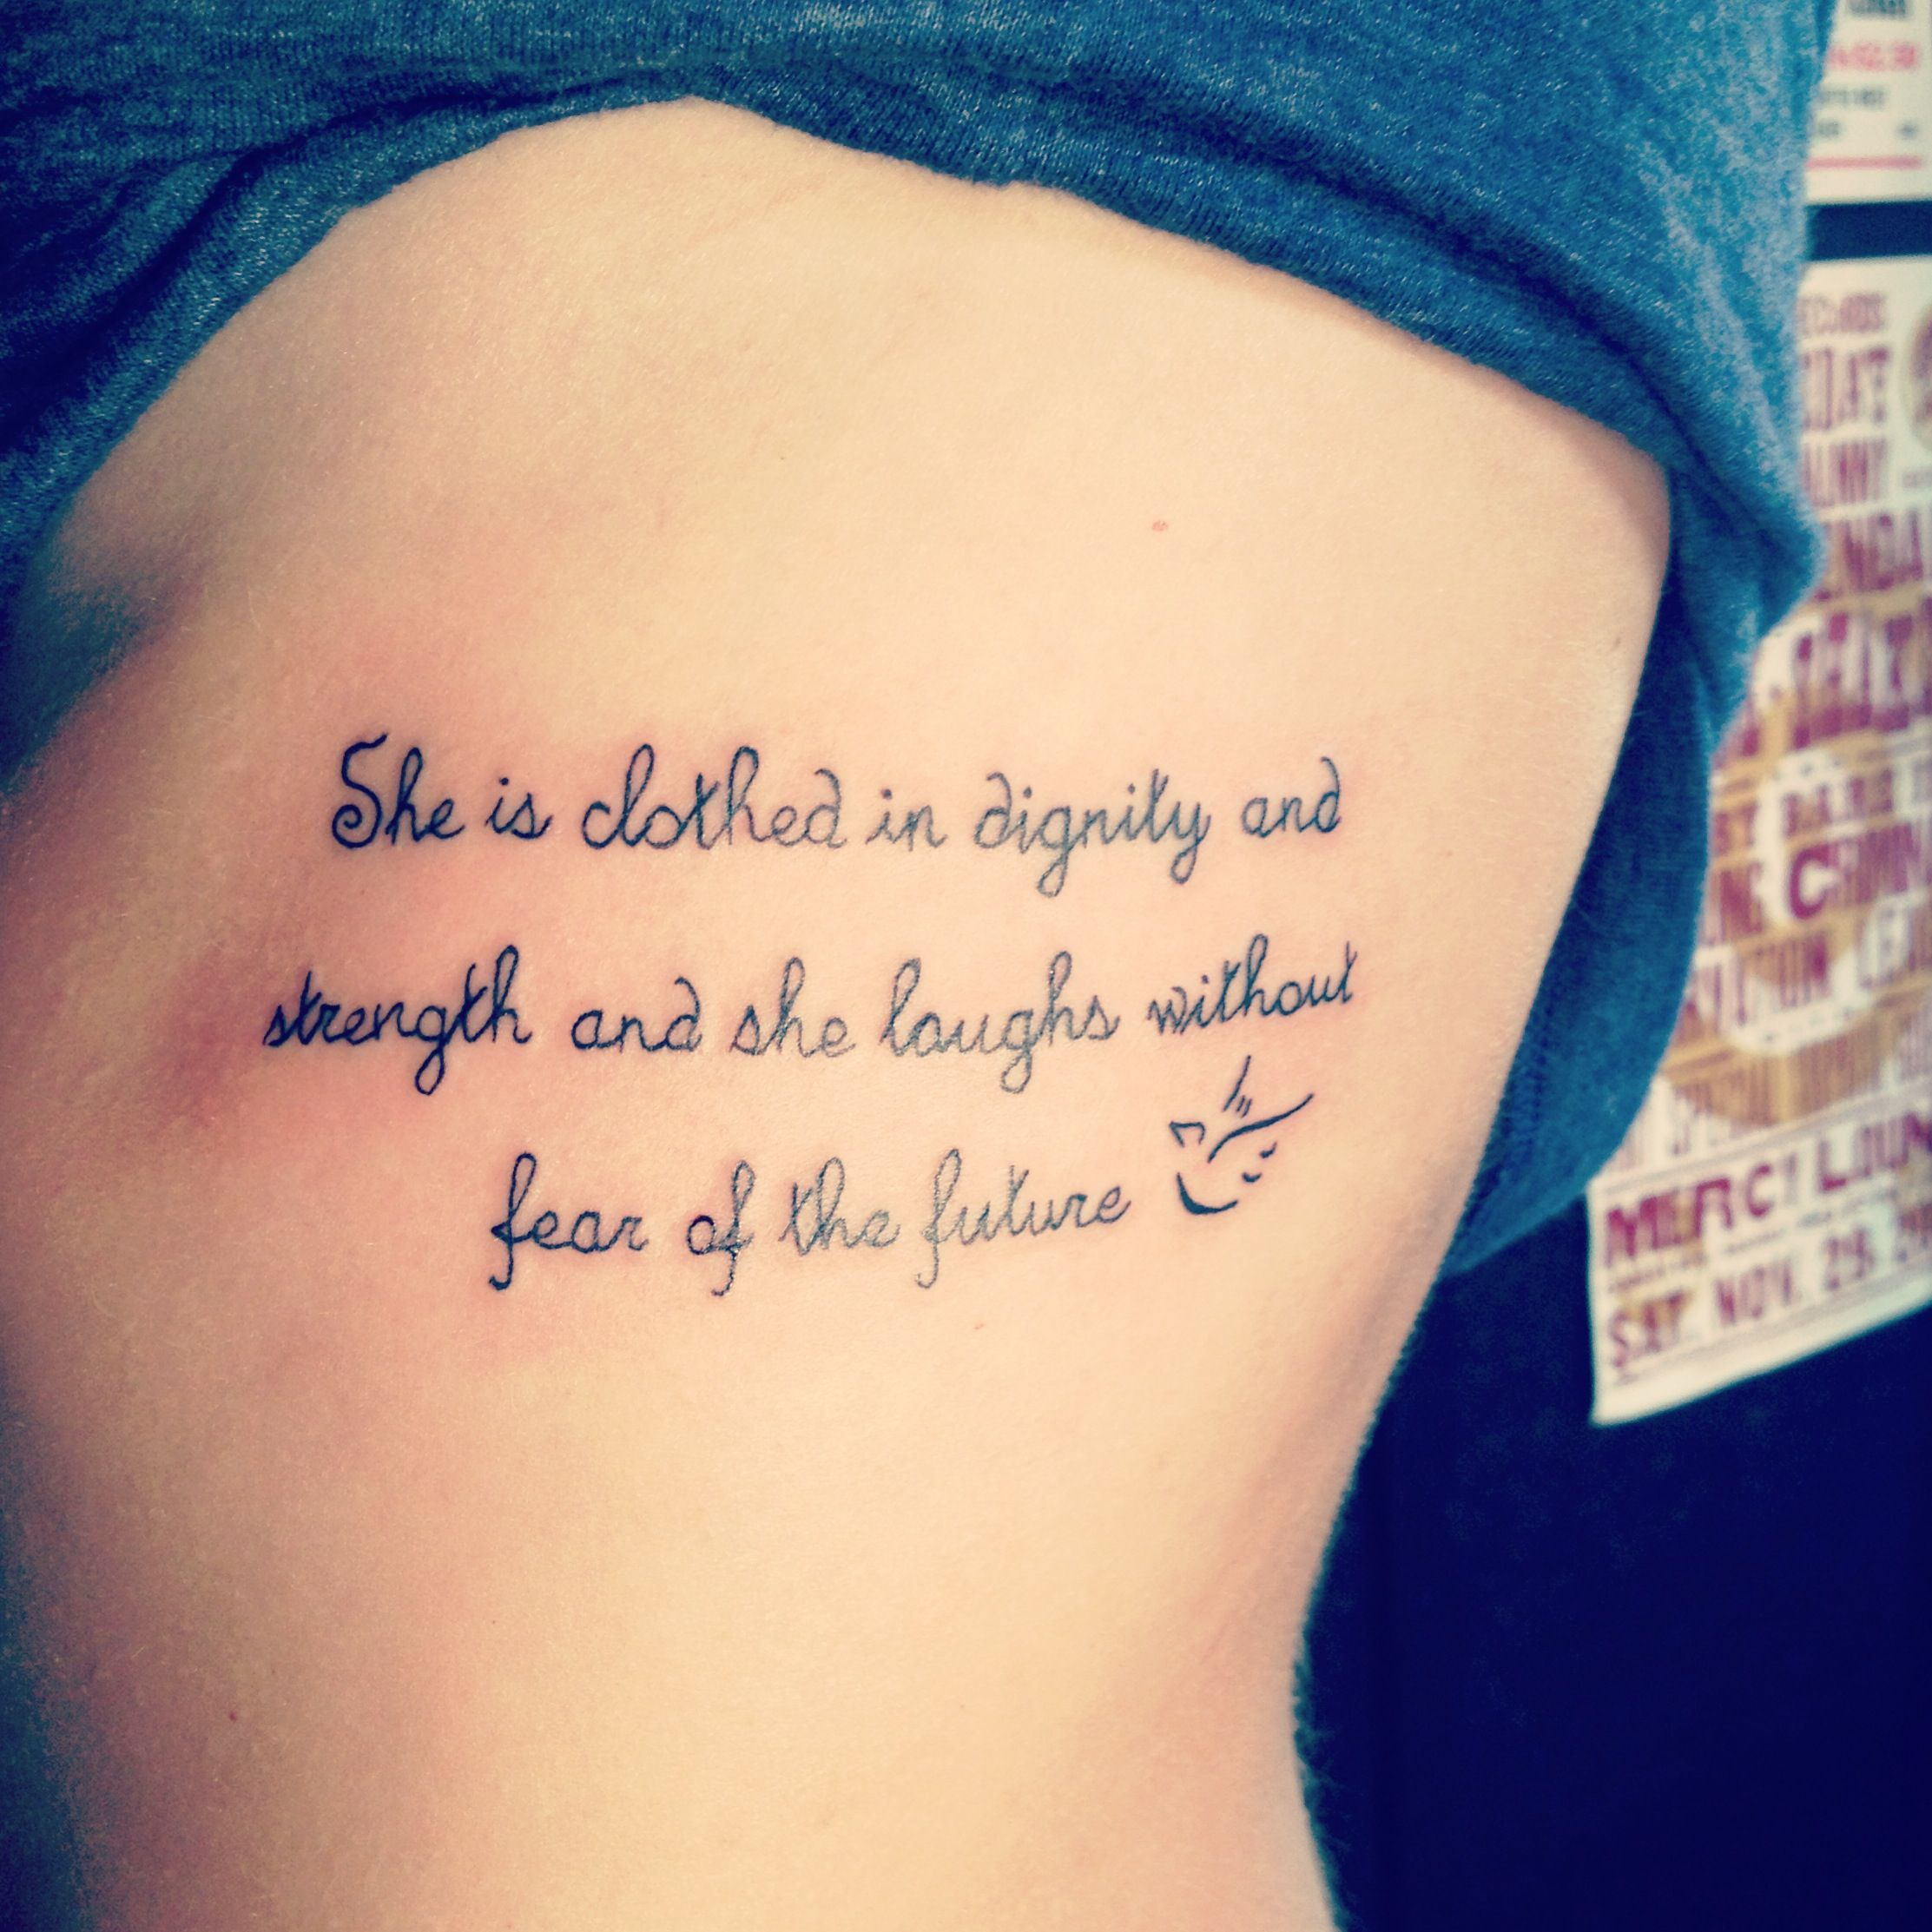 Tatoos She Is Clothed With Strength And Dignity: Rib Tattoo. She Is Clothed In Dignity And Strength And She